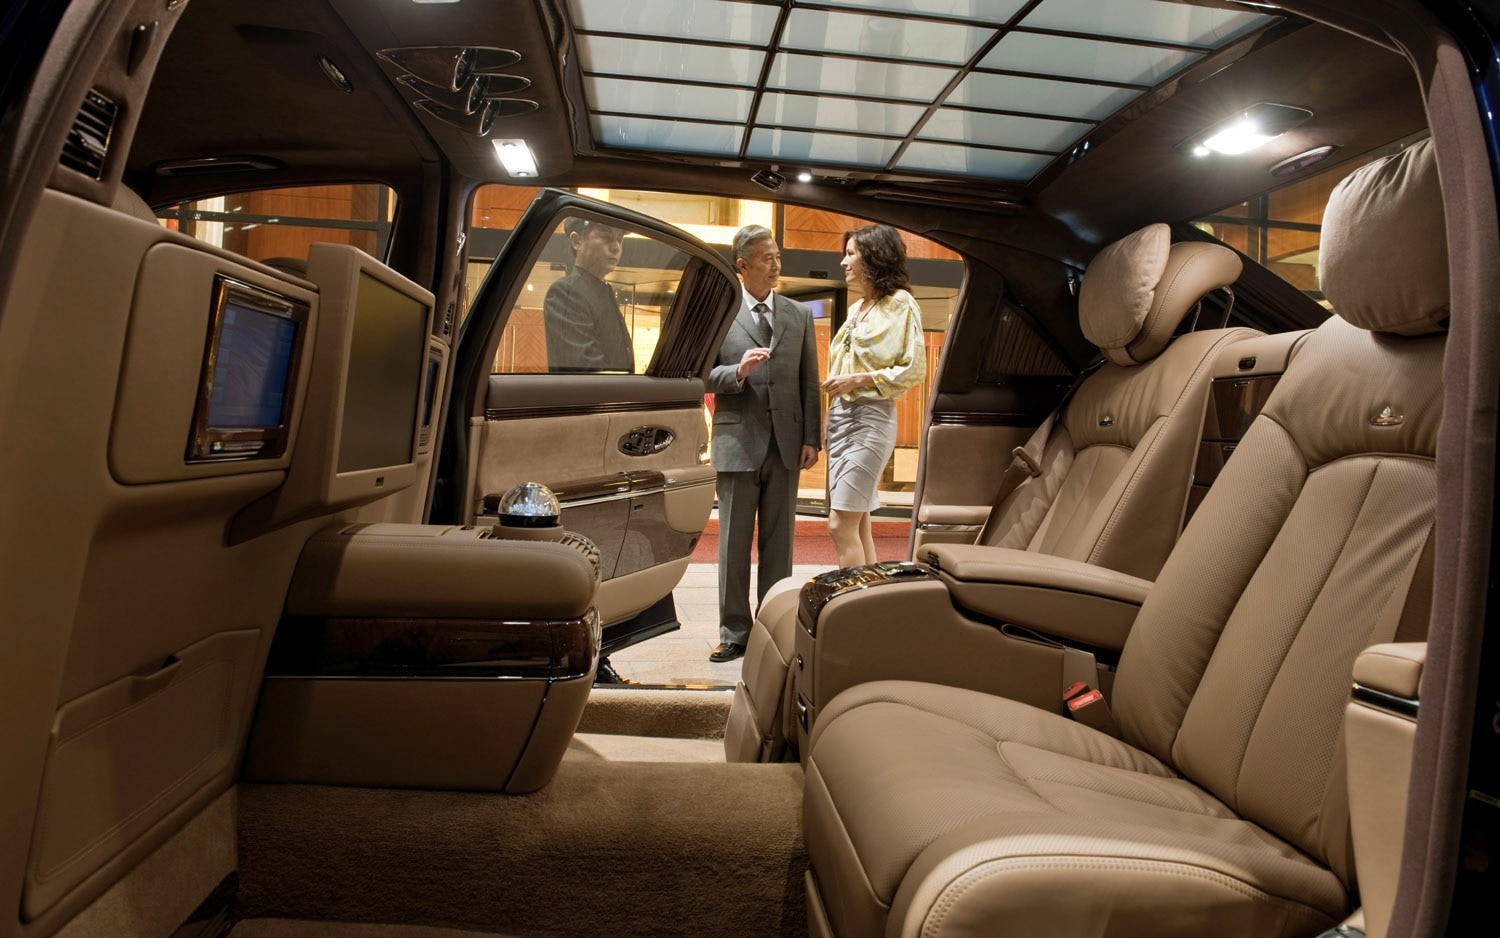 Daimler finally kills maybach will replace with stretched mercedes benz s class for Mercedes benz maybach interior